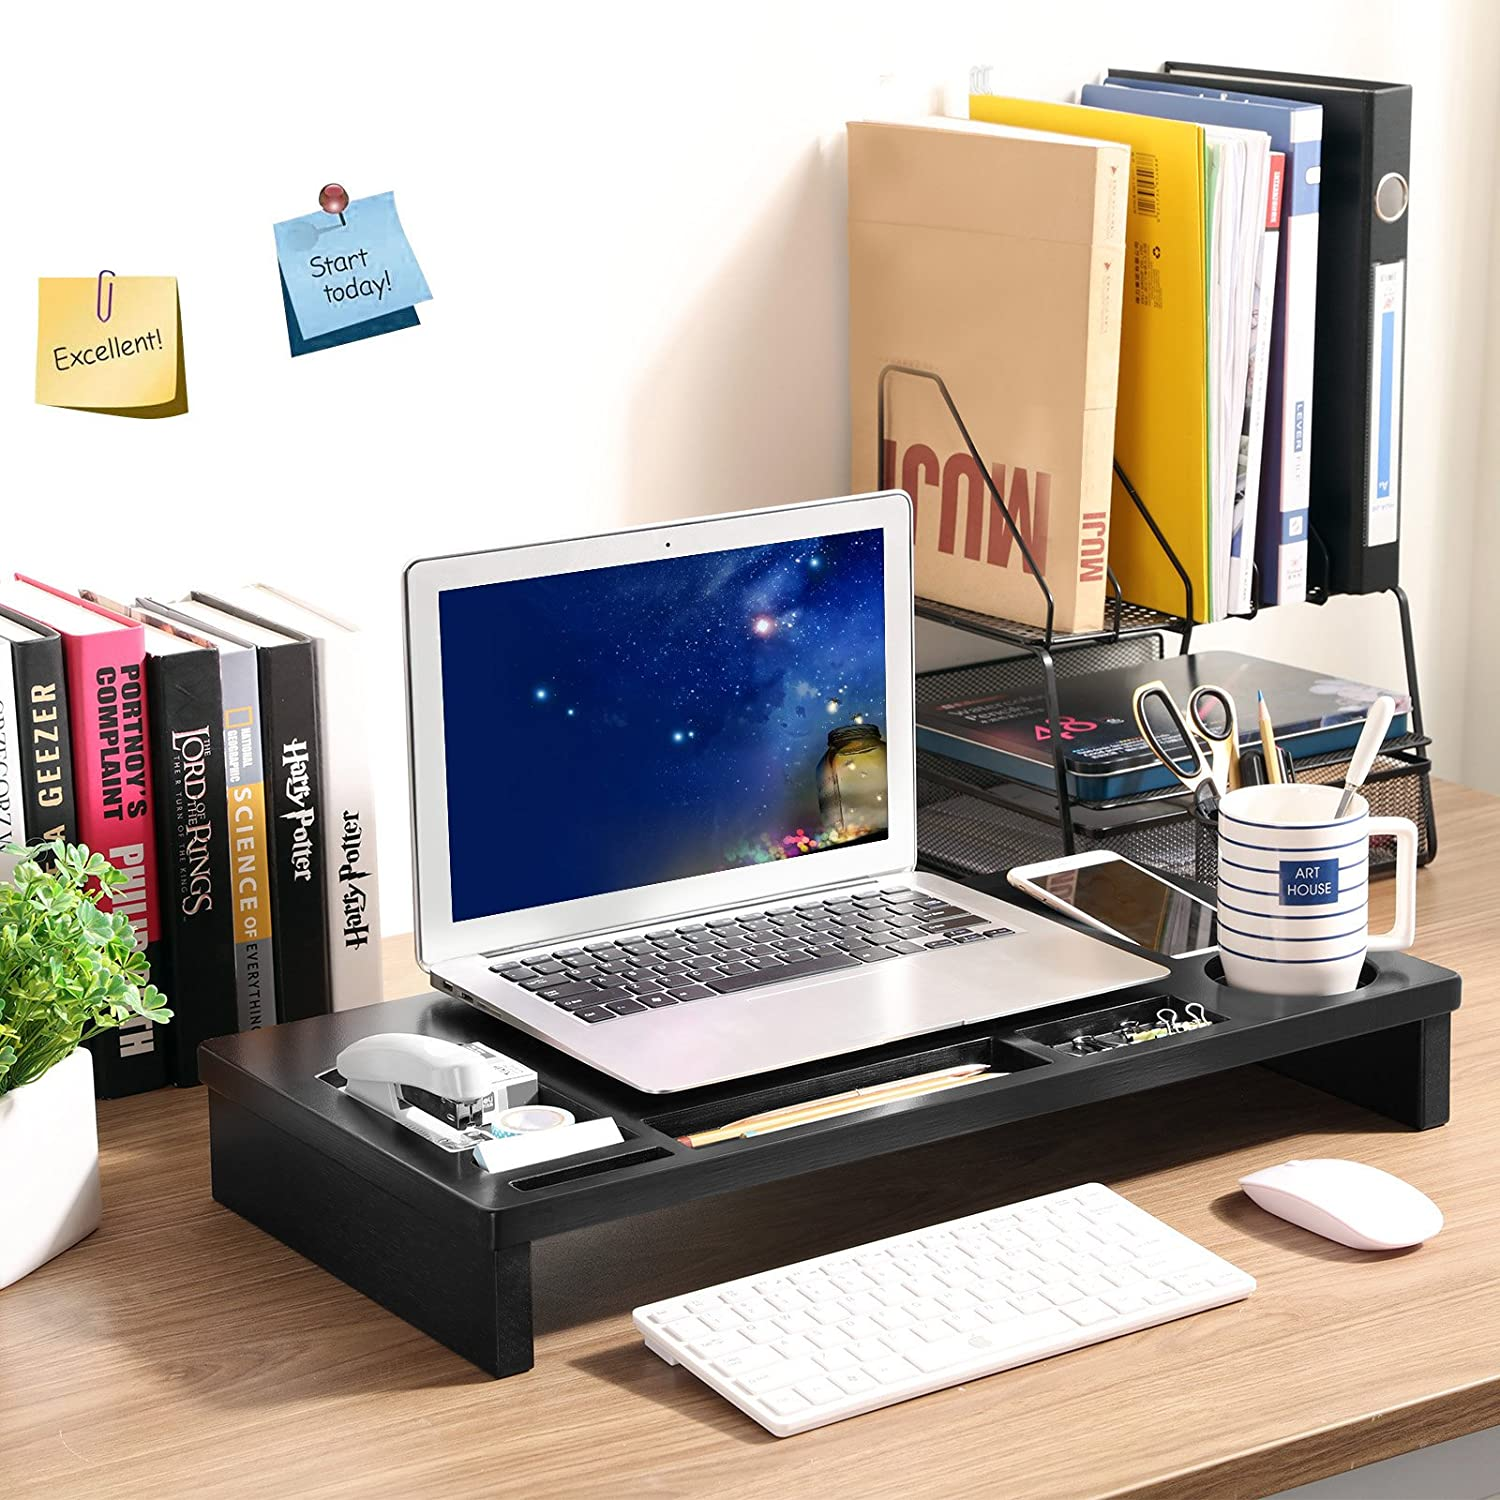 SONGMICS Bamboo Monitor Stand Riser with Storage Organizer Laptop Cellphone TV Printer Stand Desktop Container Black ULLD201H